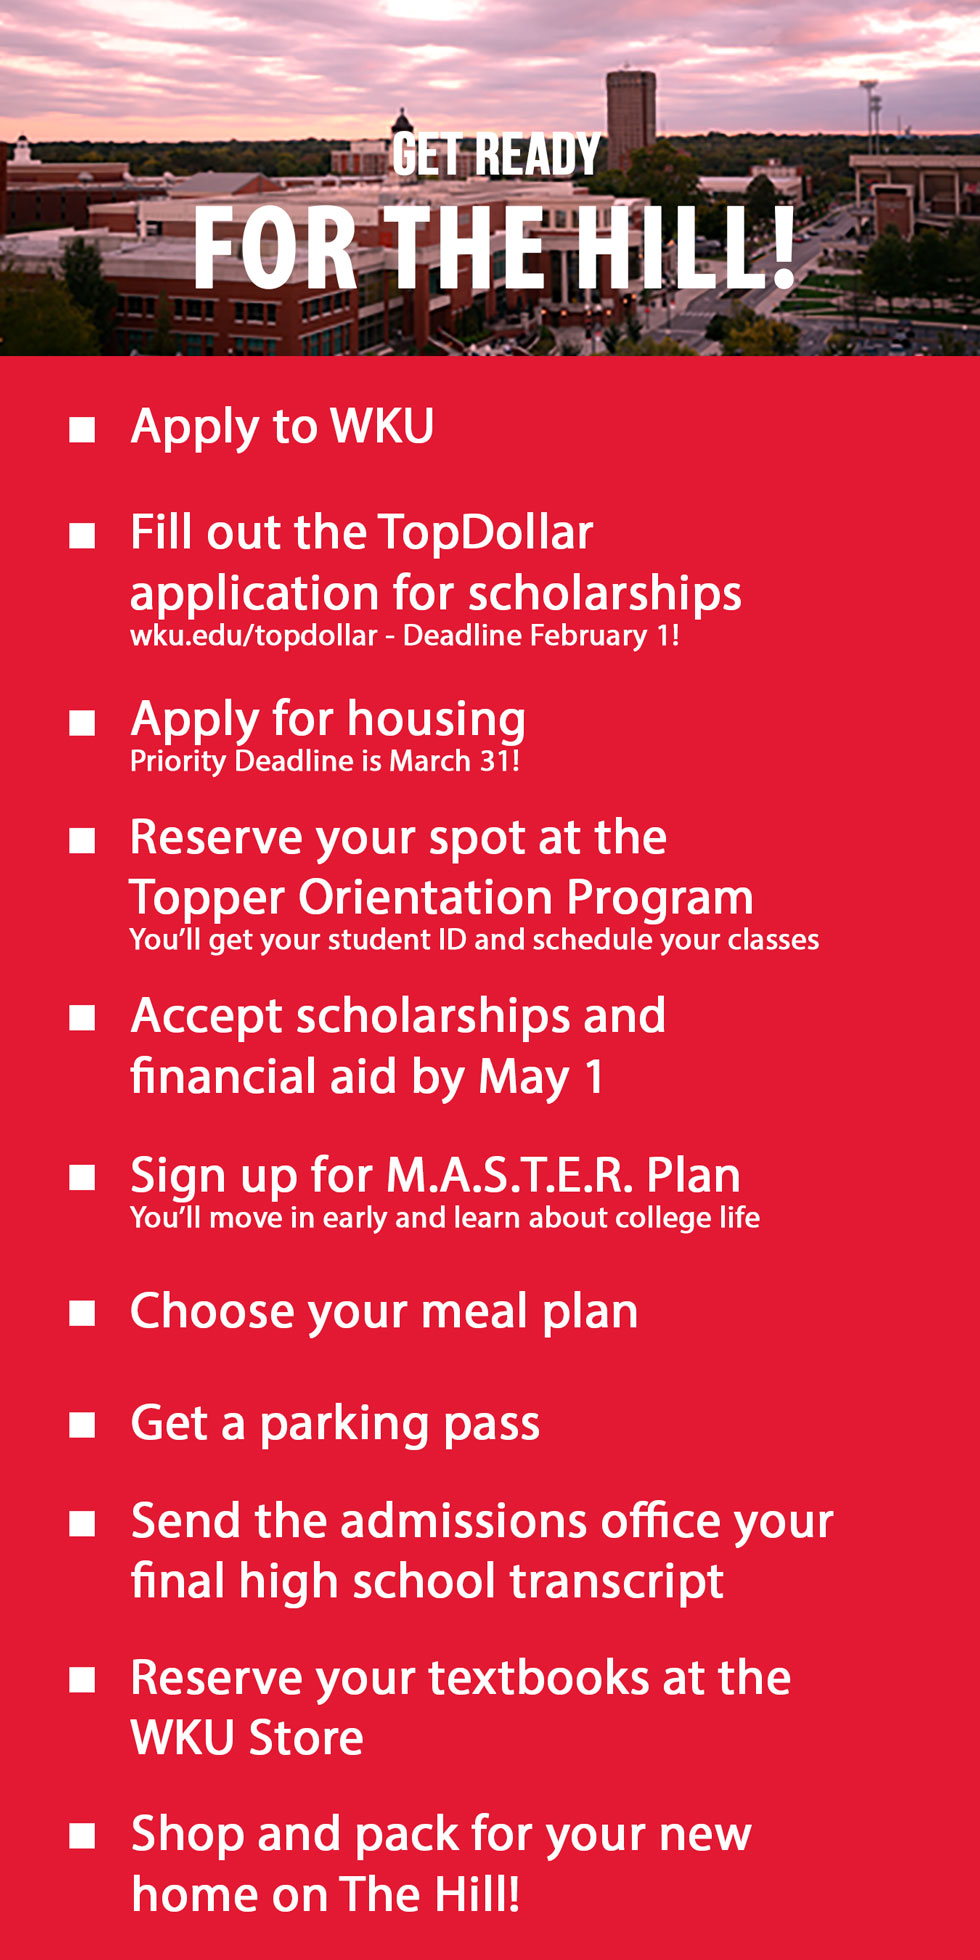 get ready for the hill. apply to wku. fill out Top Dollar application. apply for housing. go to TOP. accept scholarships. sign up for master plan. choose a meal plan. get a parking pass. send us your final high school transcript. reserve your books at the wku store. shop and pack for your new home on the hill